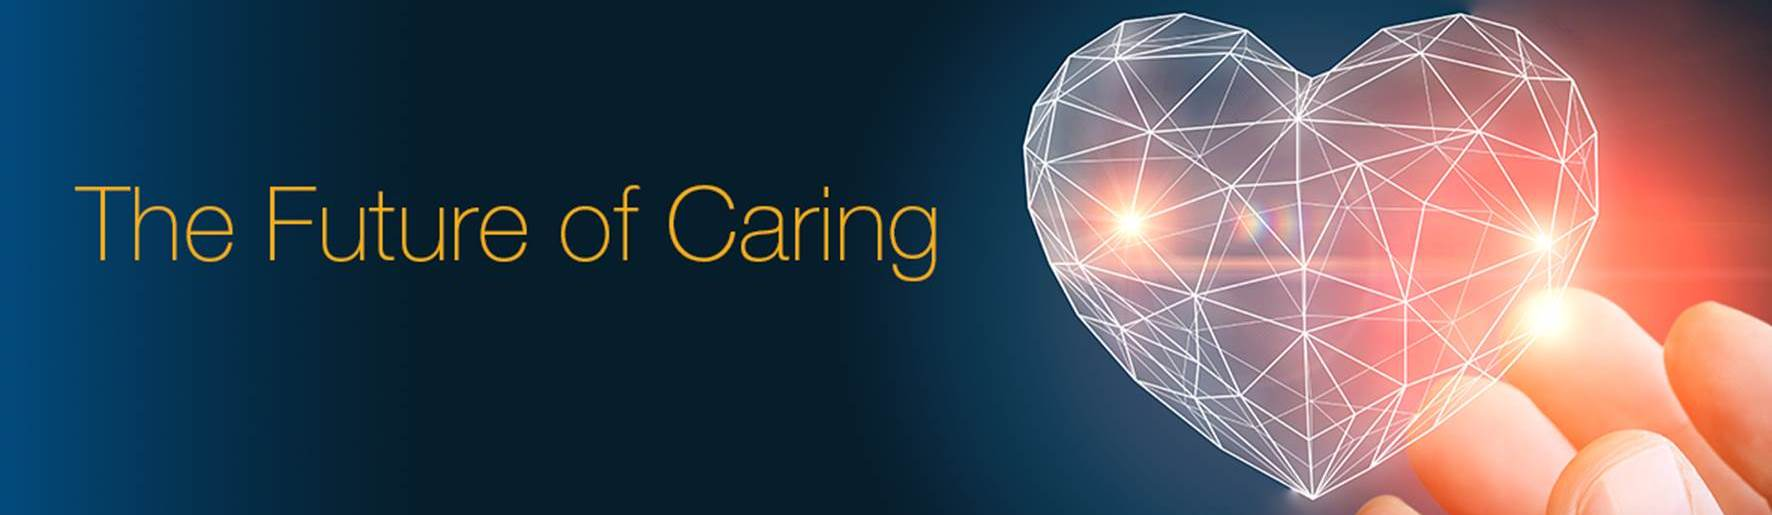 CXO Roundtable: The Future of Caring